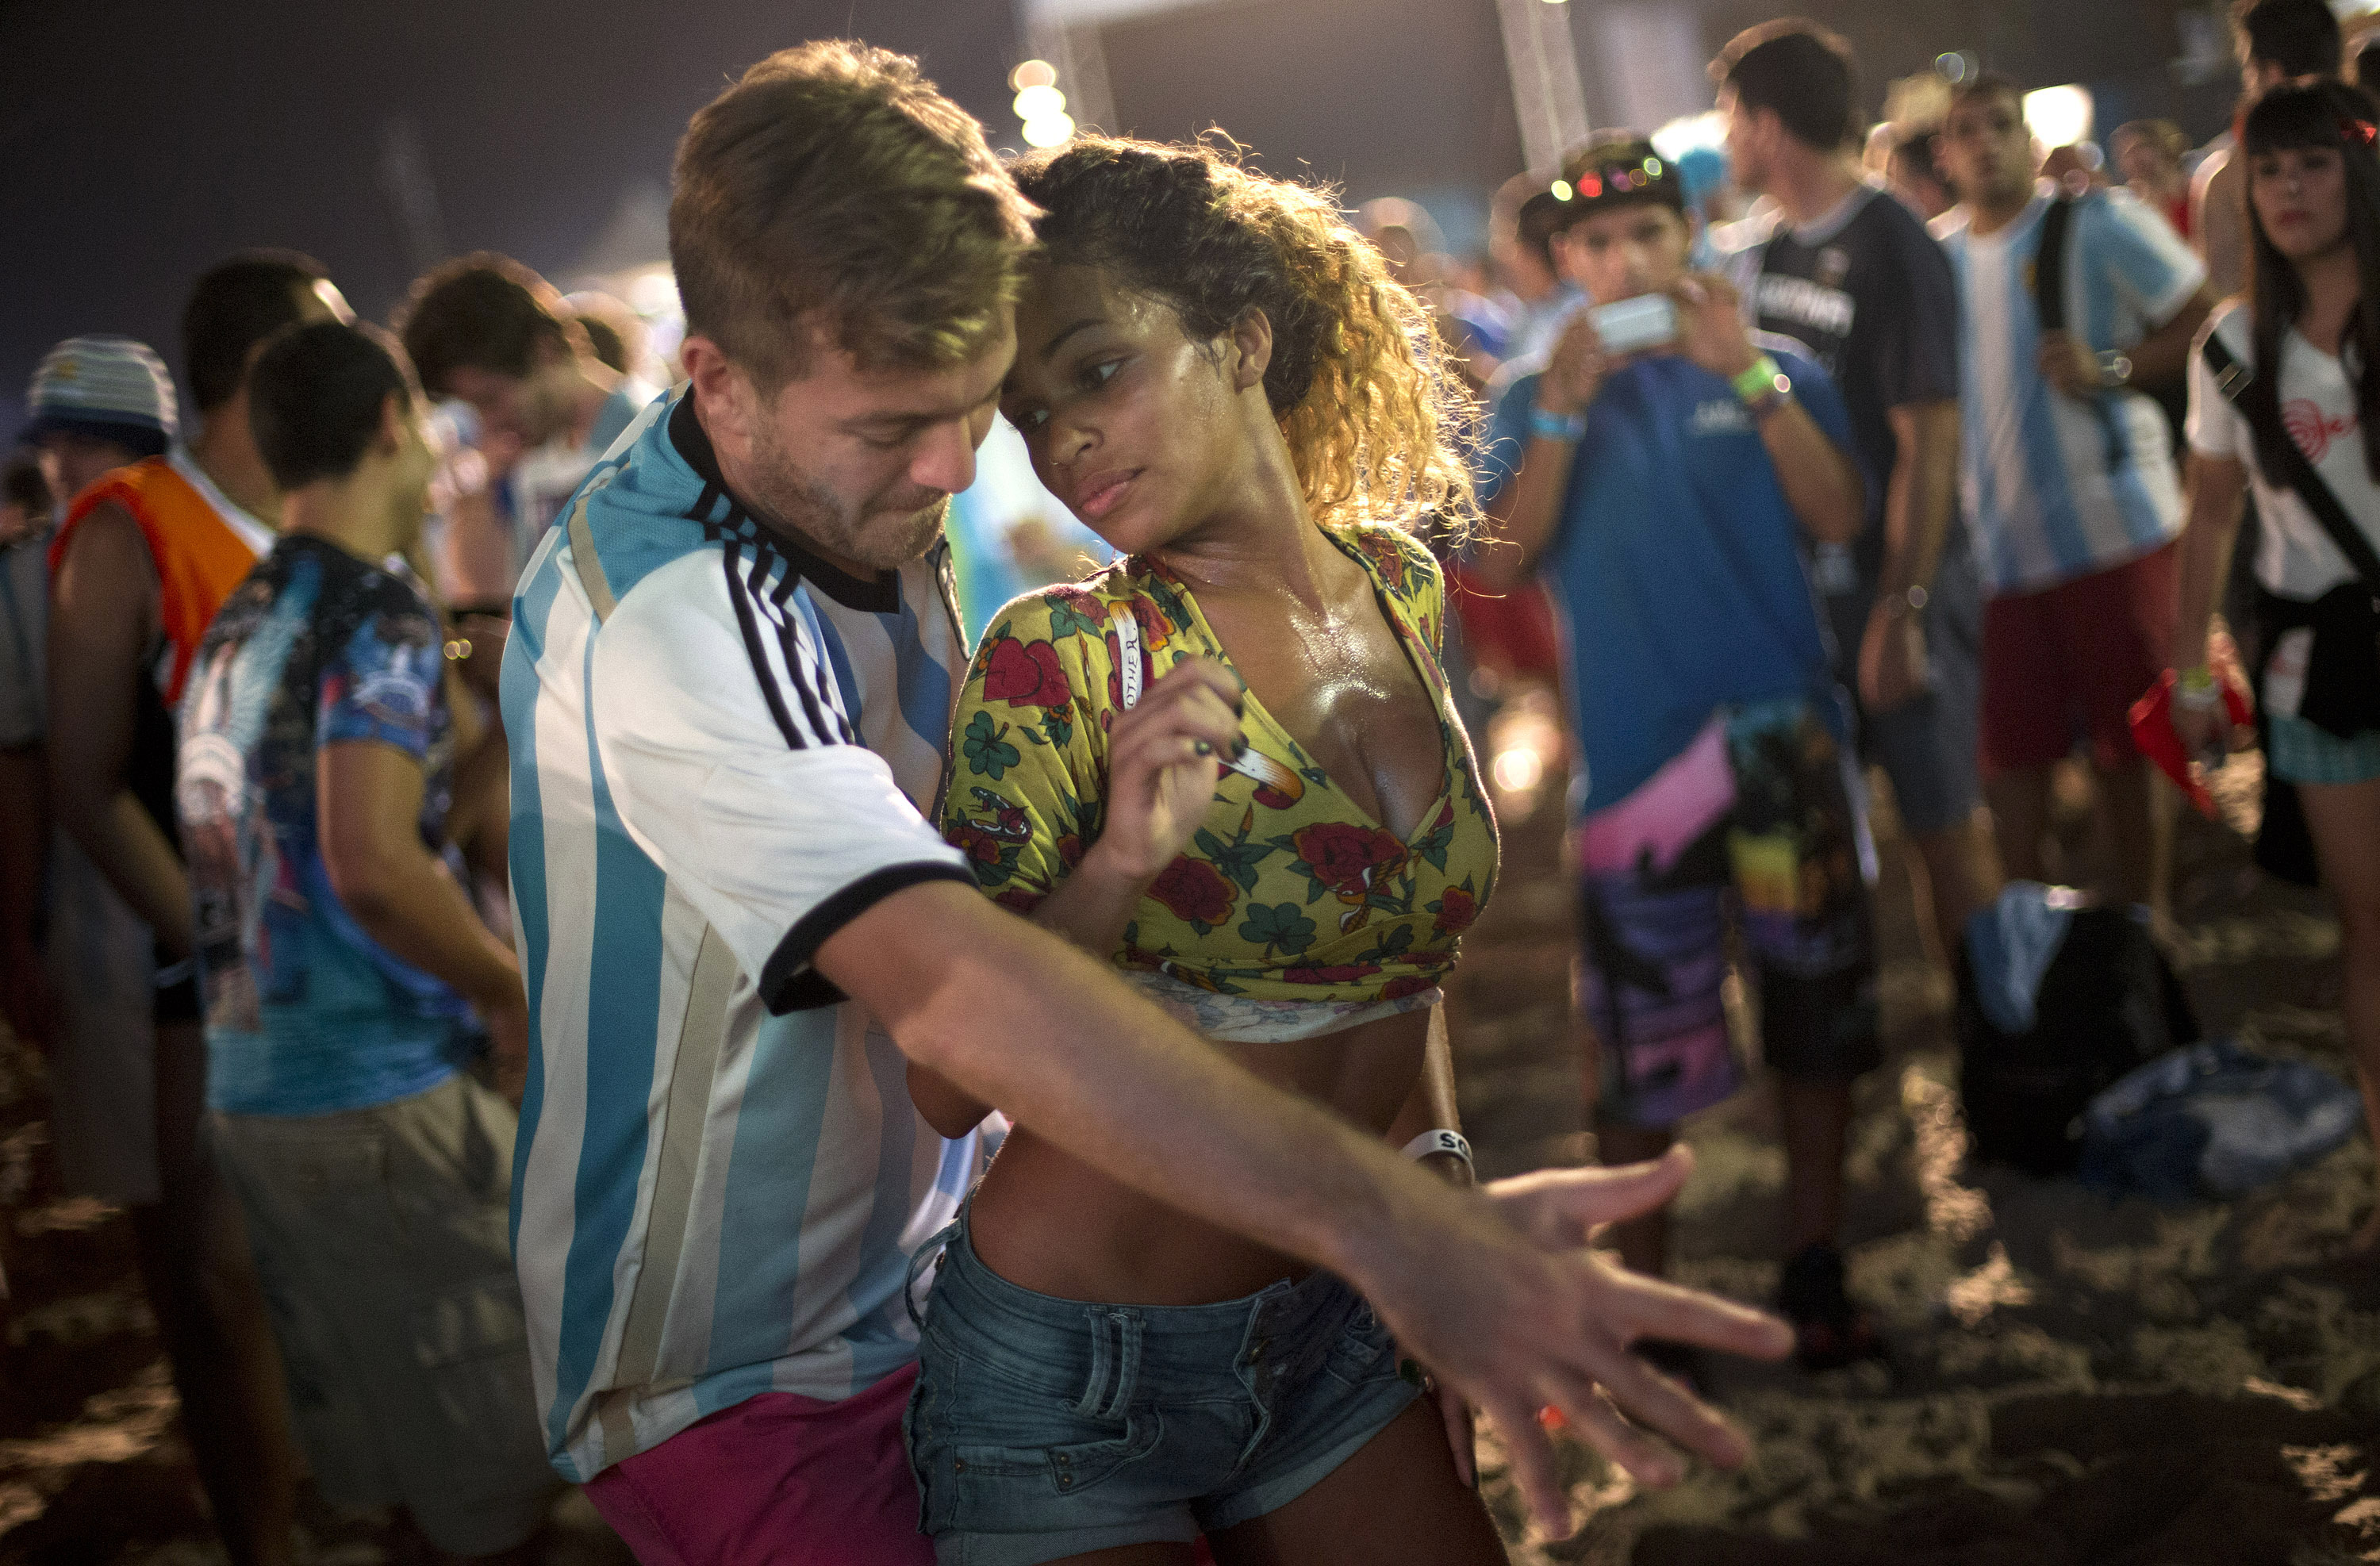 A woman from Brazil and a man from Argentina dance samba at the World Cup Fan Fest 2014, on Copacabana beach, in Rio de Janeiro on July 9, 2014.